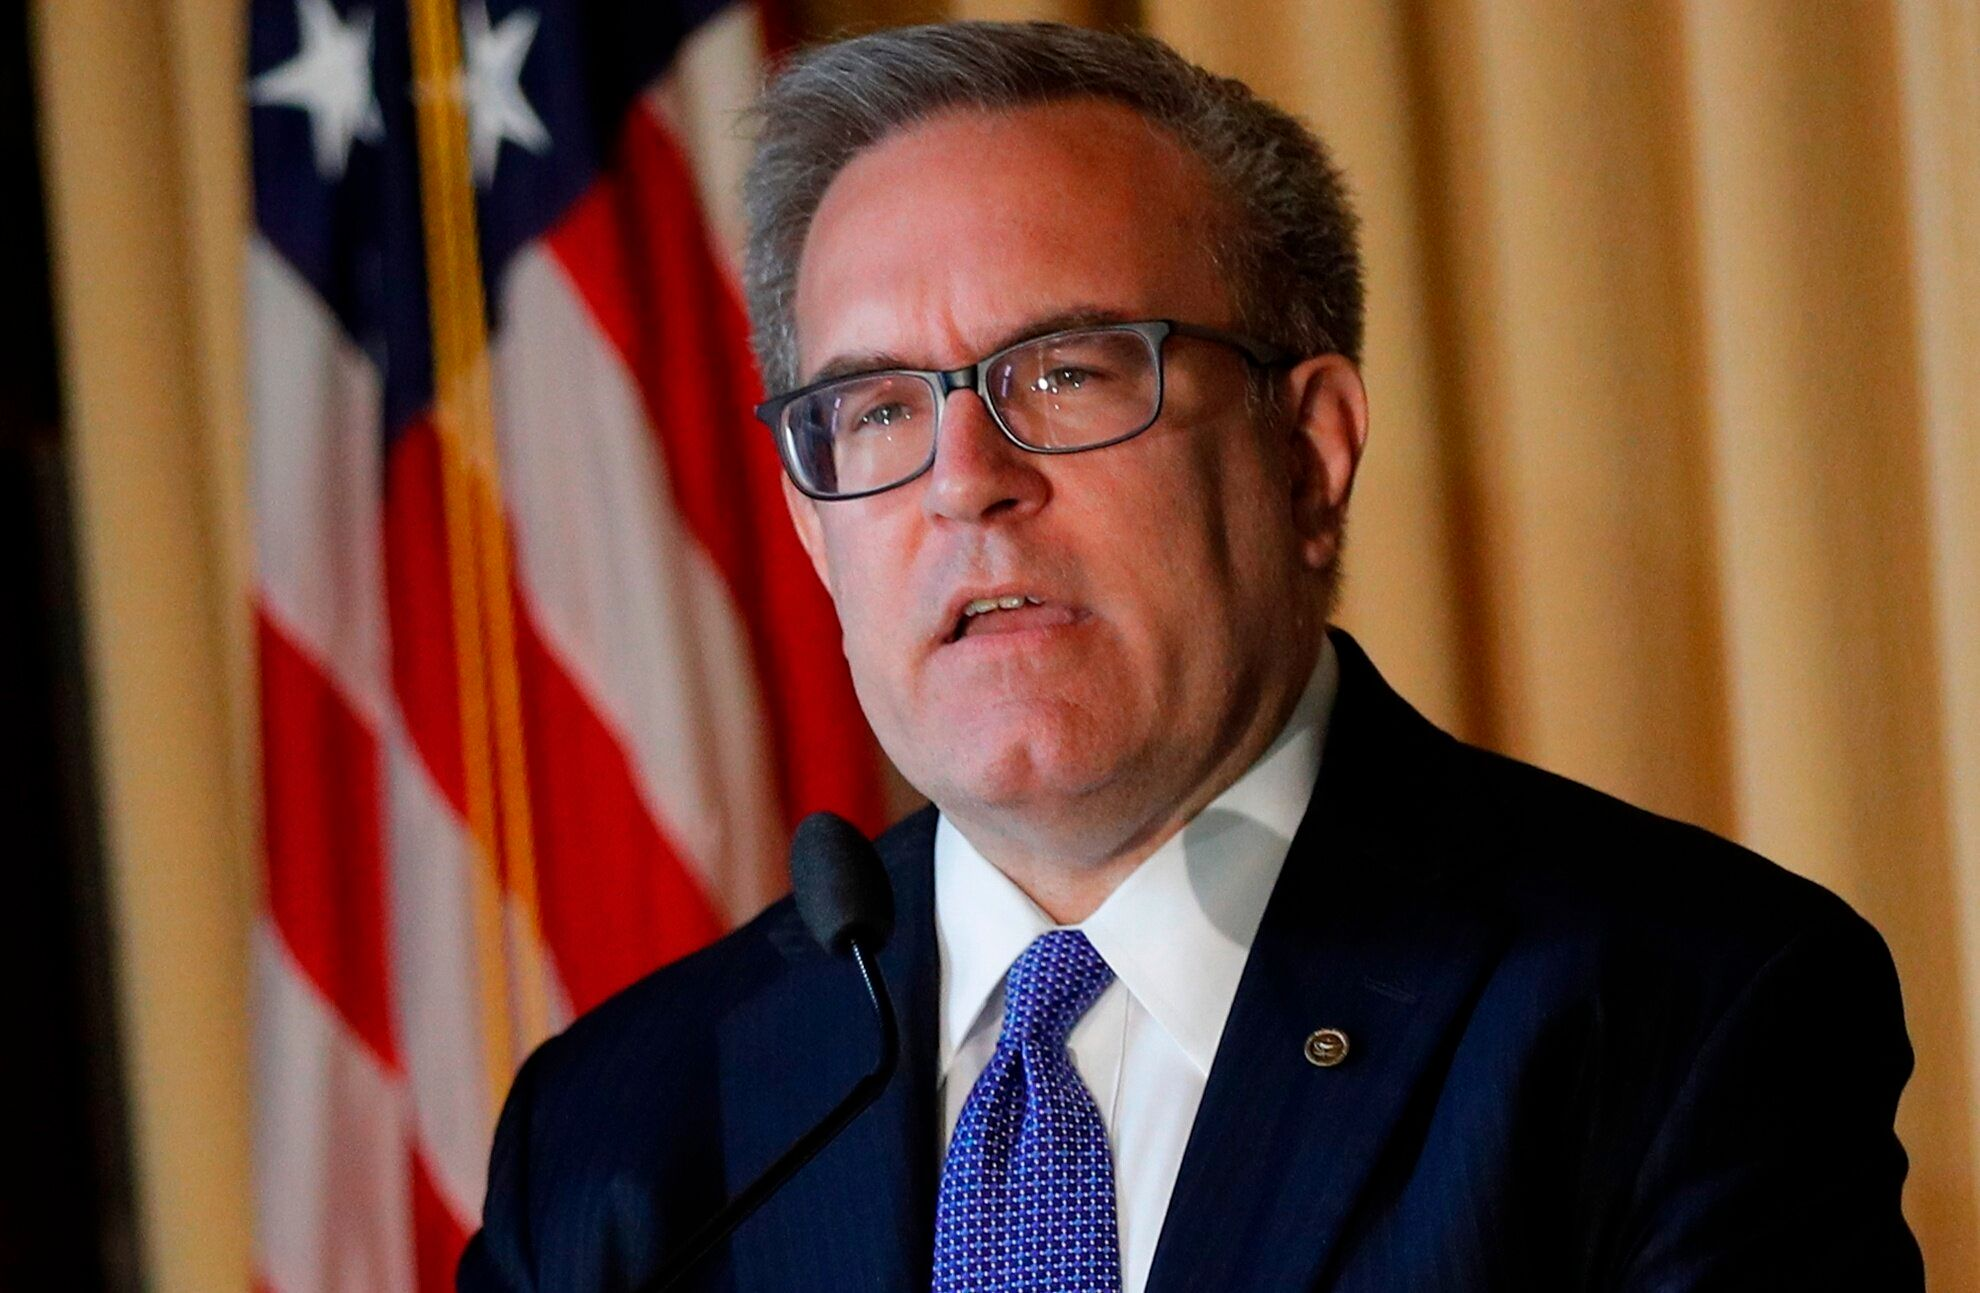 Environmental Protection Agency Administrator Andrew Wheeler has announced plans to dramatically reduce and eventually elimin